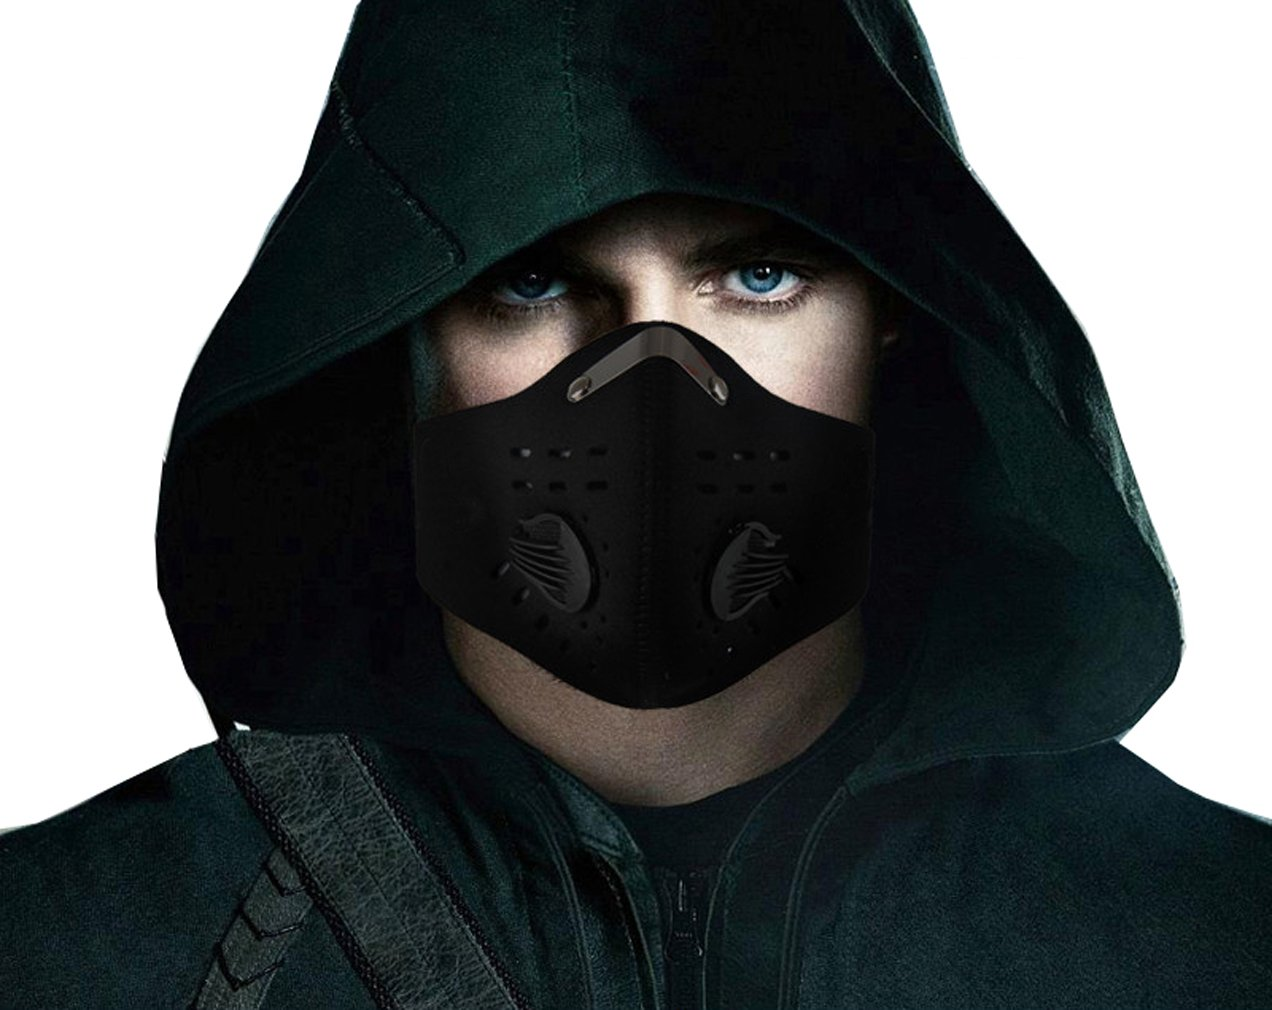 Apparel Accessories Men's Accessories Face Mask Cotton Mouth Mask Black Anti Haze Dust Masks Filter Windproof Mouth-muffle Bacteria Flu Fabric Cloth Respirator &2